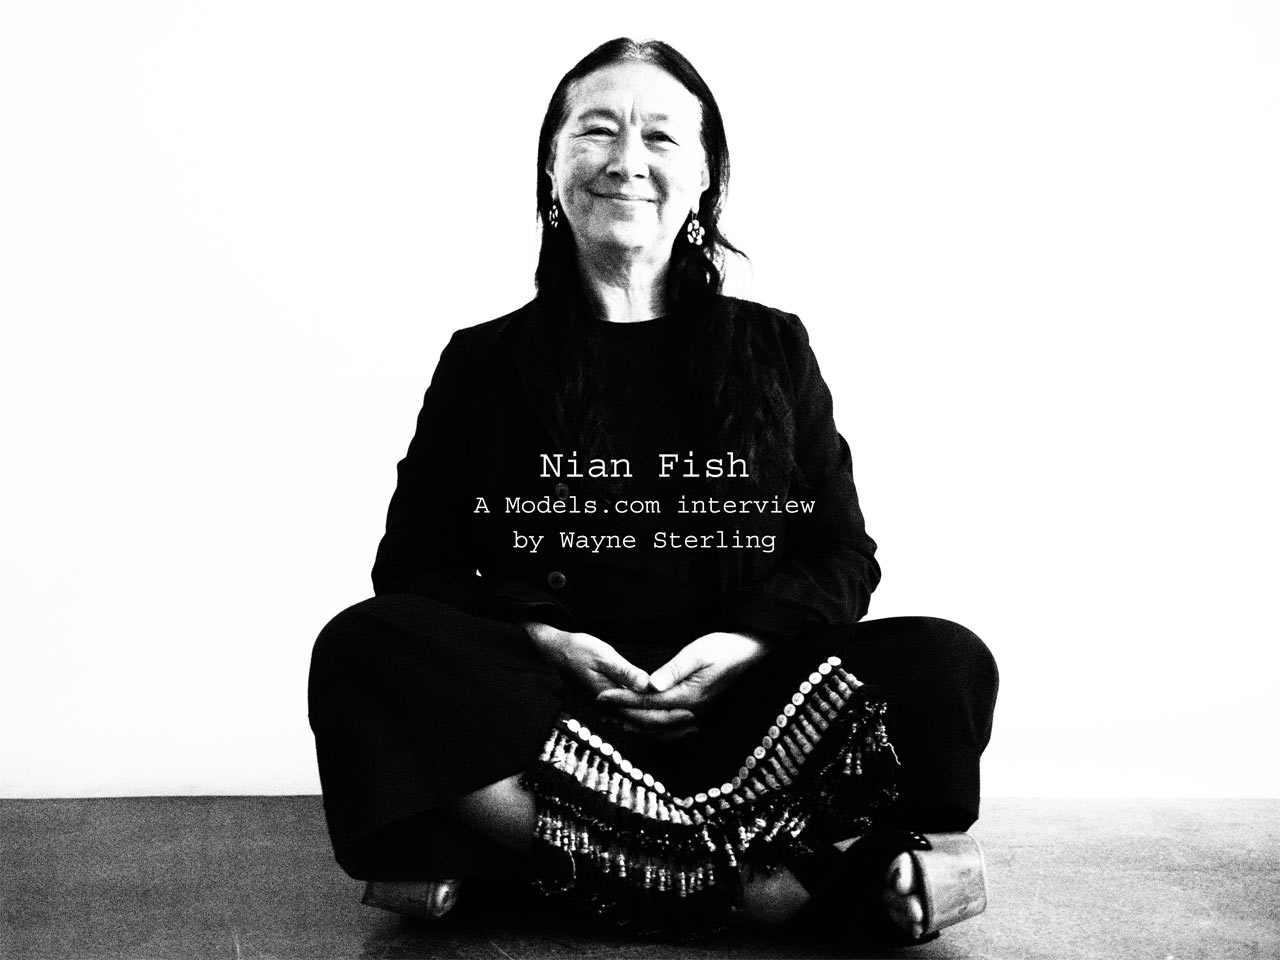 Nian Fish - A Models.com interview by Wayne Sterling, portrait by Stephan Moskovic